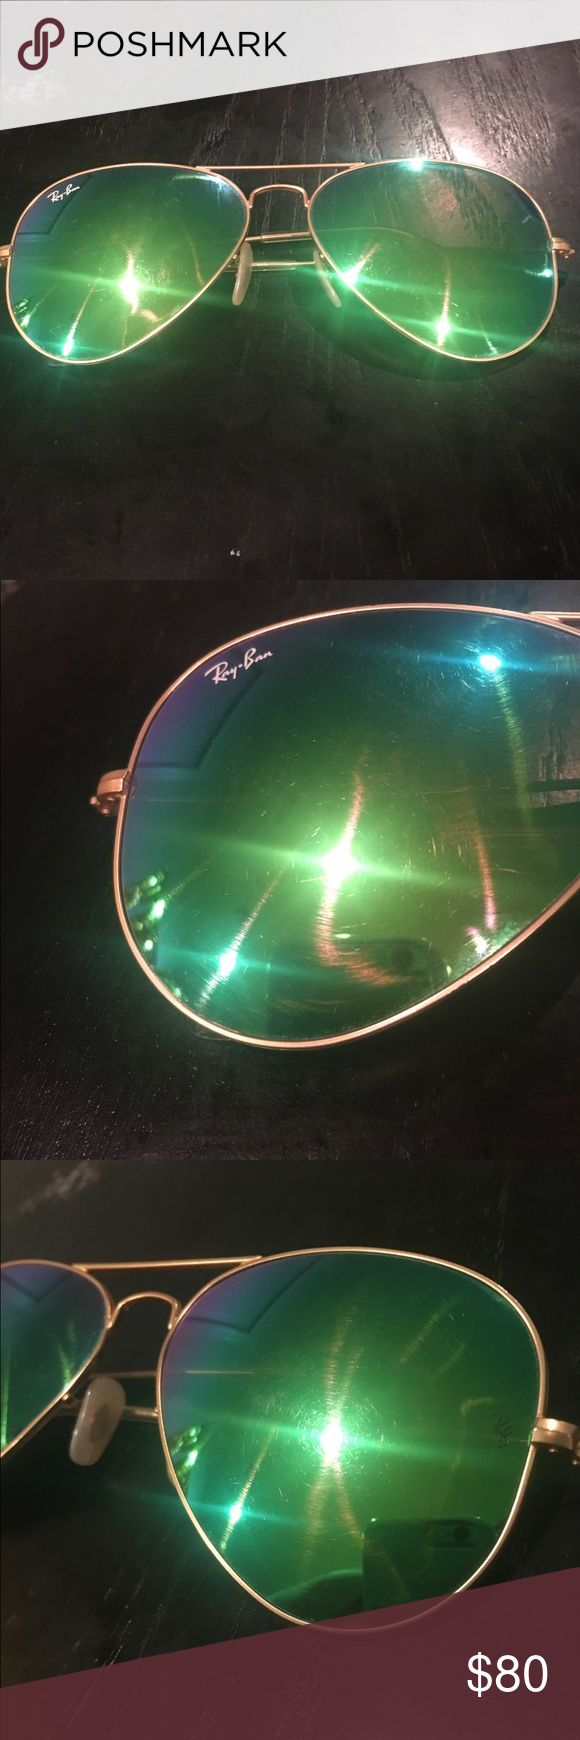 Ray ban aviators reflective lenses Rayban aviators used! Few stratches to lenses Ray-Ban Accessories Sunglasses